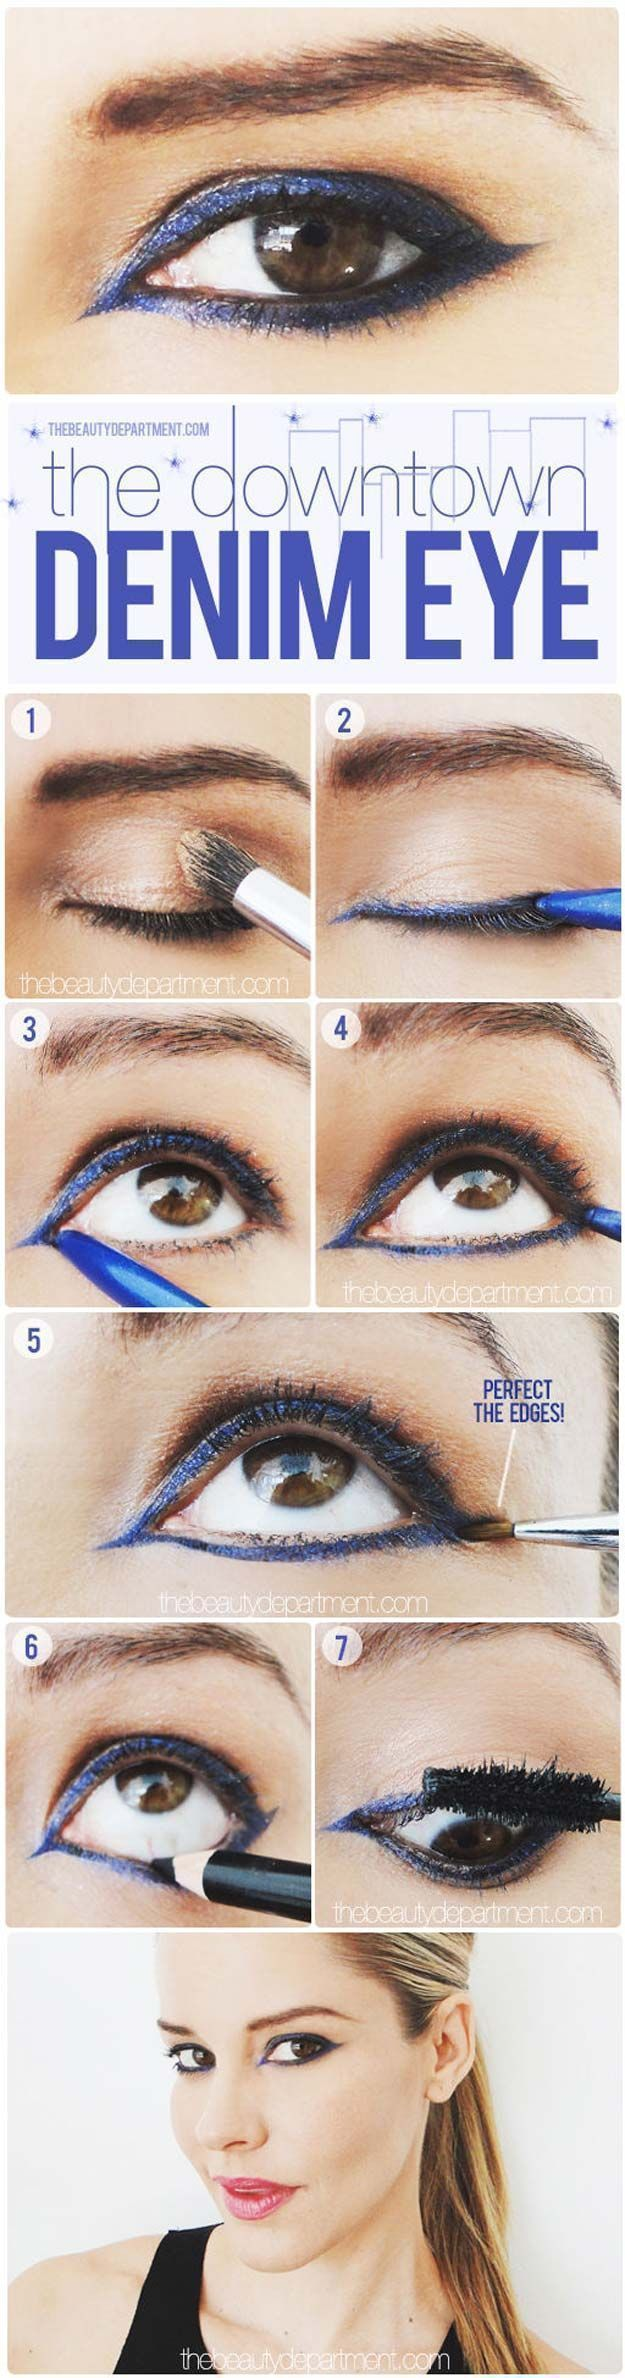 Best Eyeliner Tutorials - Indigo Girl - Simple And DIY Eyeliner Tutorials For Beginners. Includes Everyday Looks For Natural Eyes, Winged Eyeliner, Pencil, Felt, Liquid, and Gel Eyeliner Tips. Ideas For Small Eyes, Large Eyes, Blue Eyes, Brown Eyes, Hazel Eyes, and Green Eyes - http://thegoddess.com/best-eyeliner-tutorials #smallwingedliner